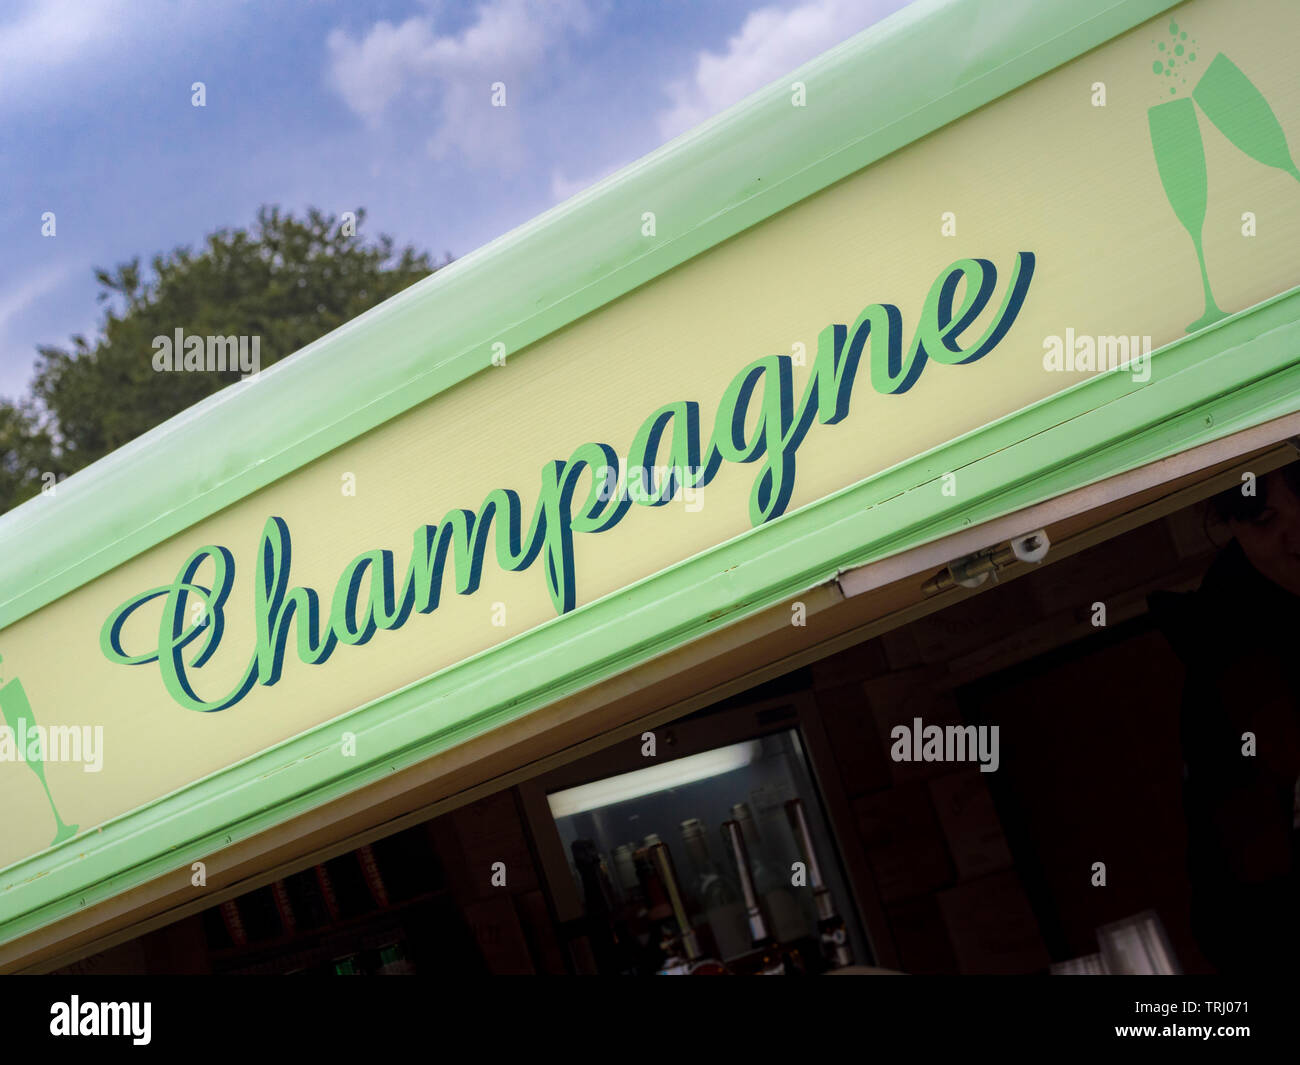 Champagne sign on mobile bar at outdoor event - Stock Image